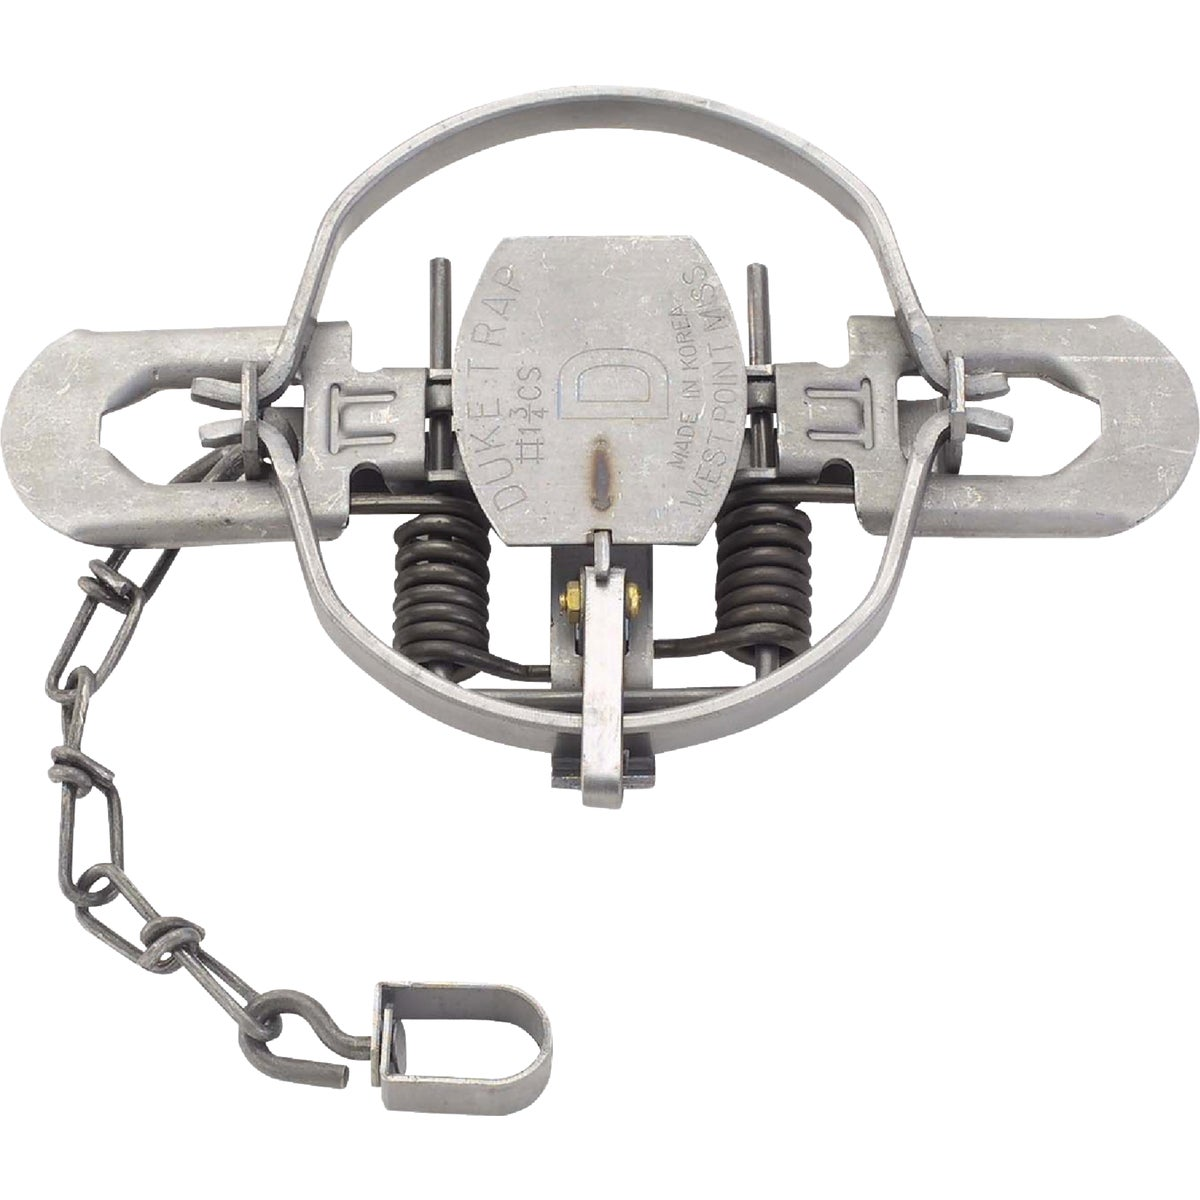 #1 3/4 COIL SPRING TRAP - 0475 by Duke Company